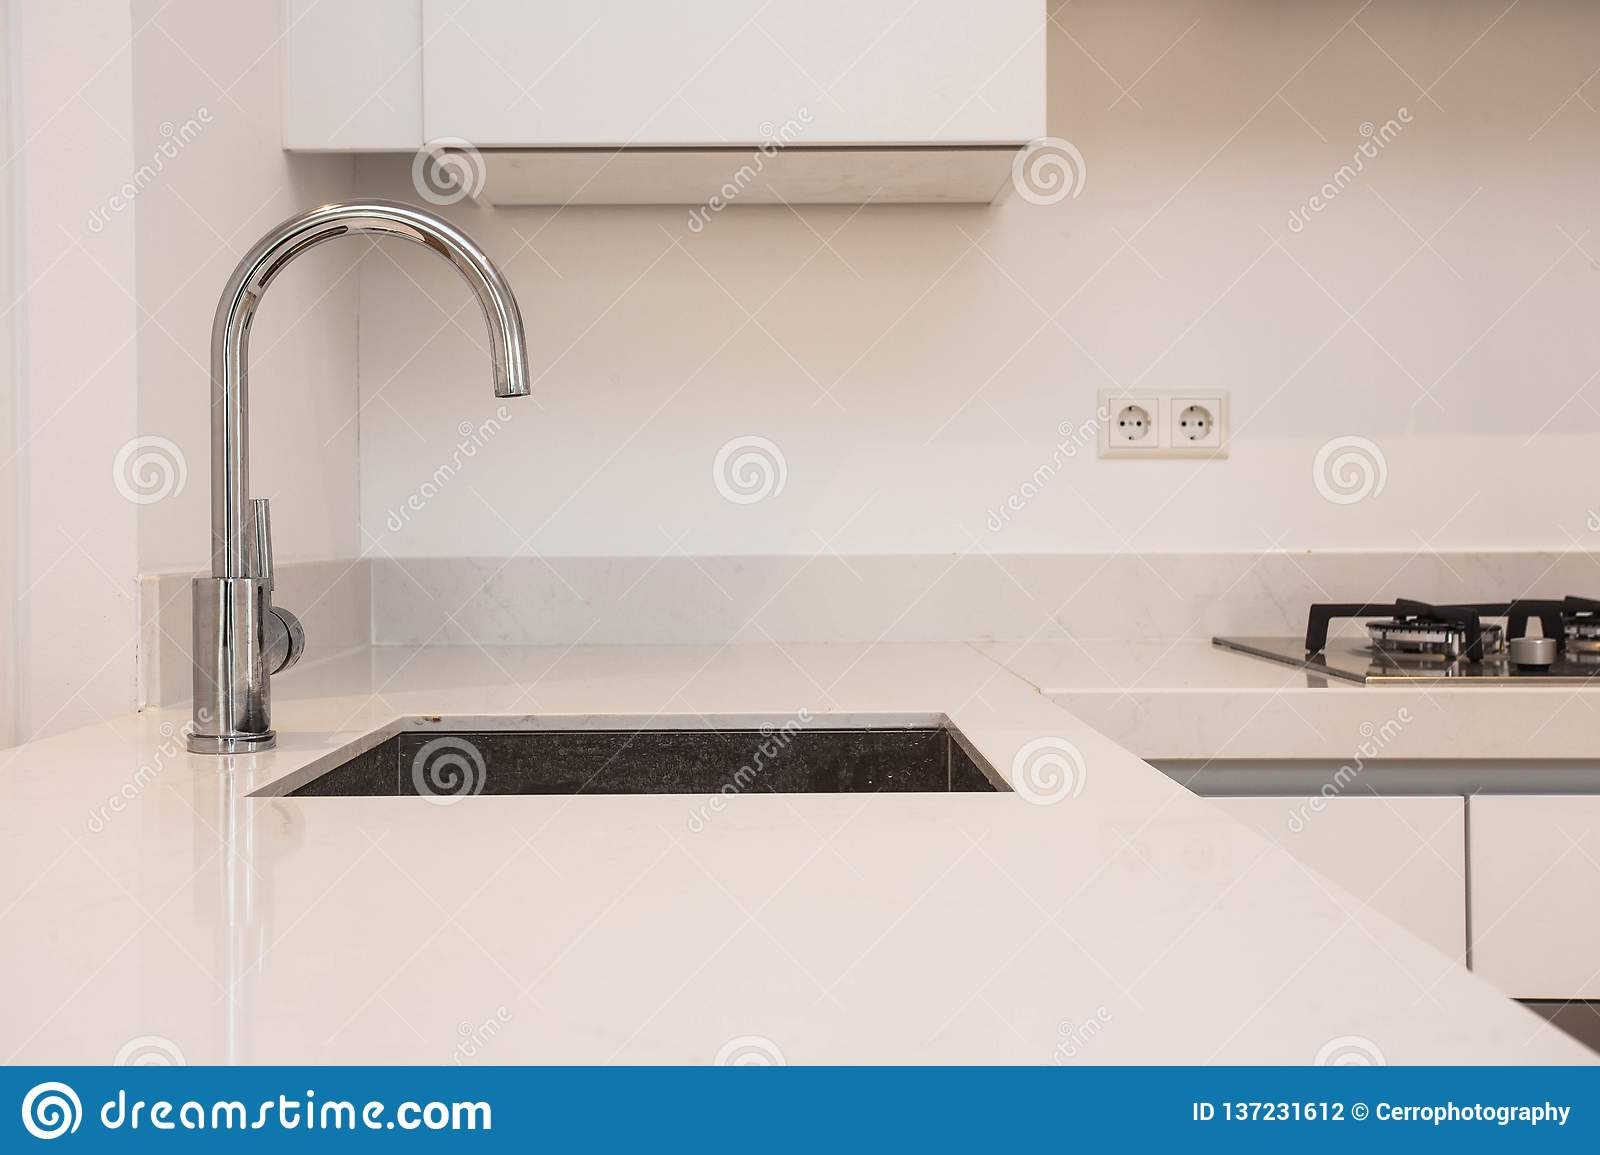 Luxurious modern kitchen with sink, Contemporary kitchen unit with chromed water tap modern white clean concept